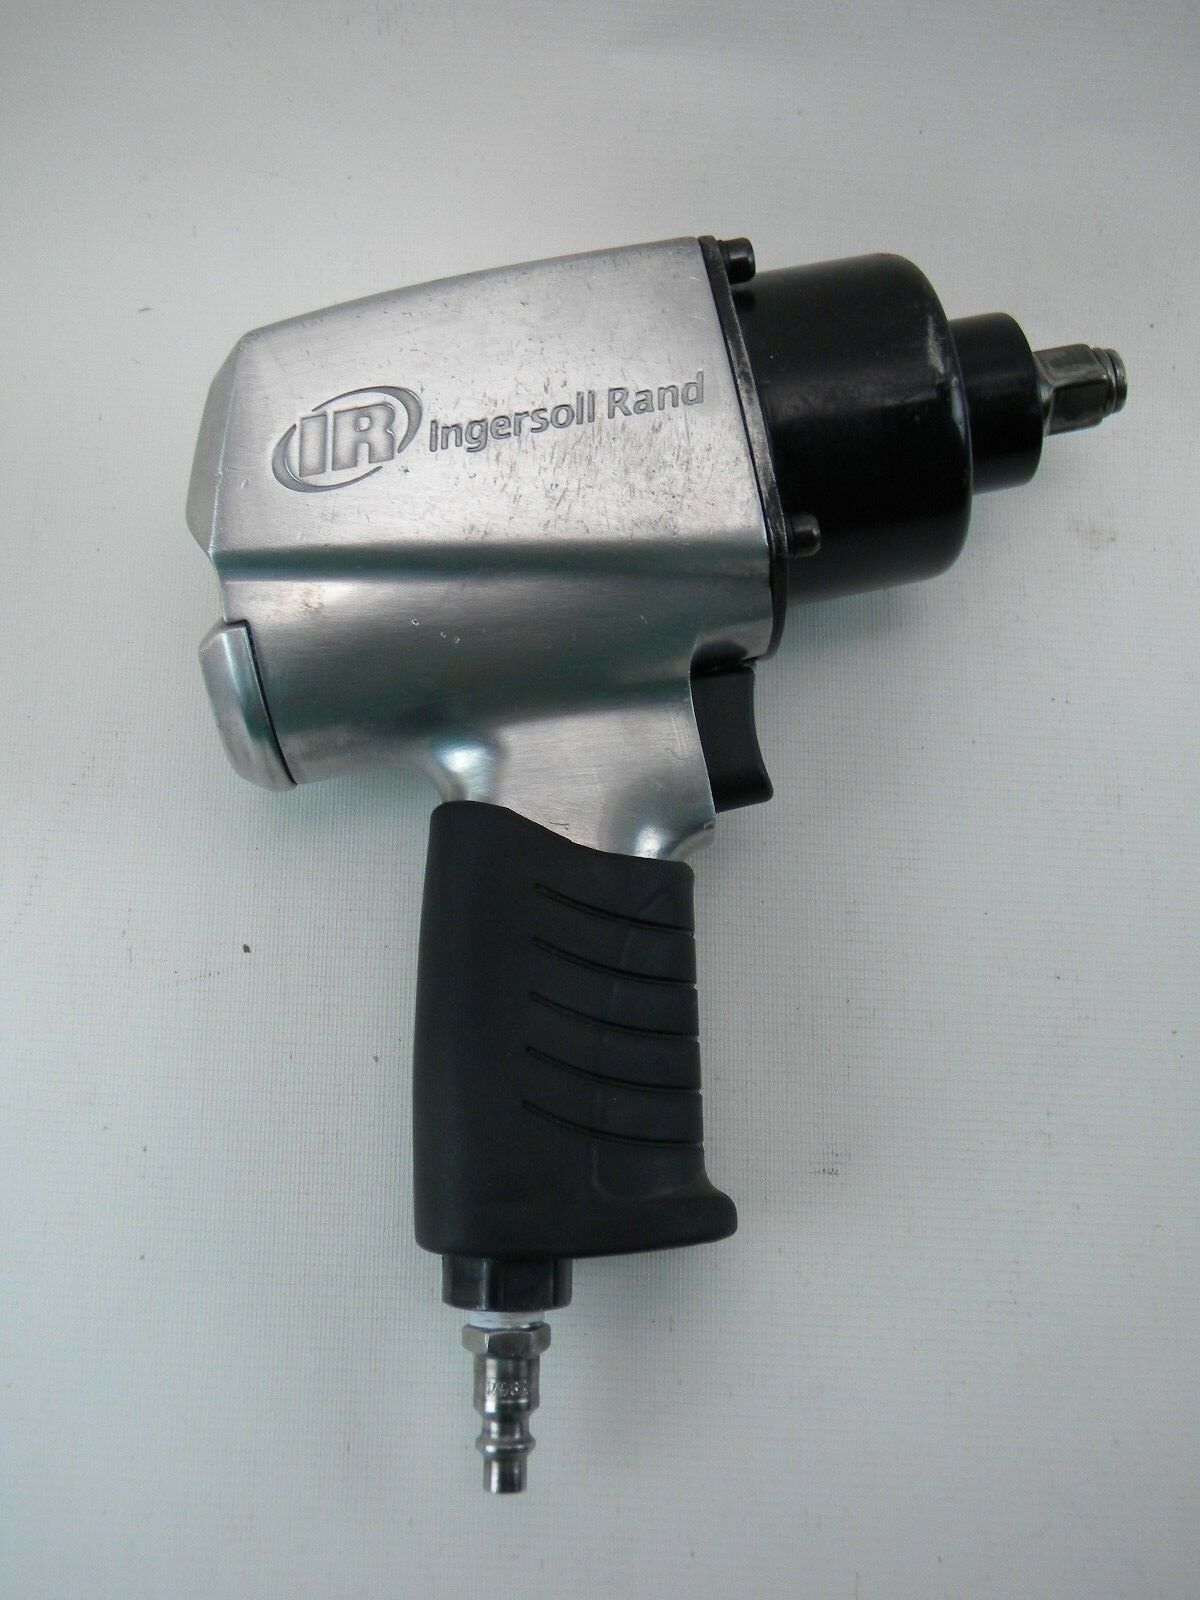 Ingersoll Rand Edge Series 236g 1 2'' Drive Air Impact